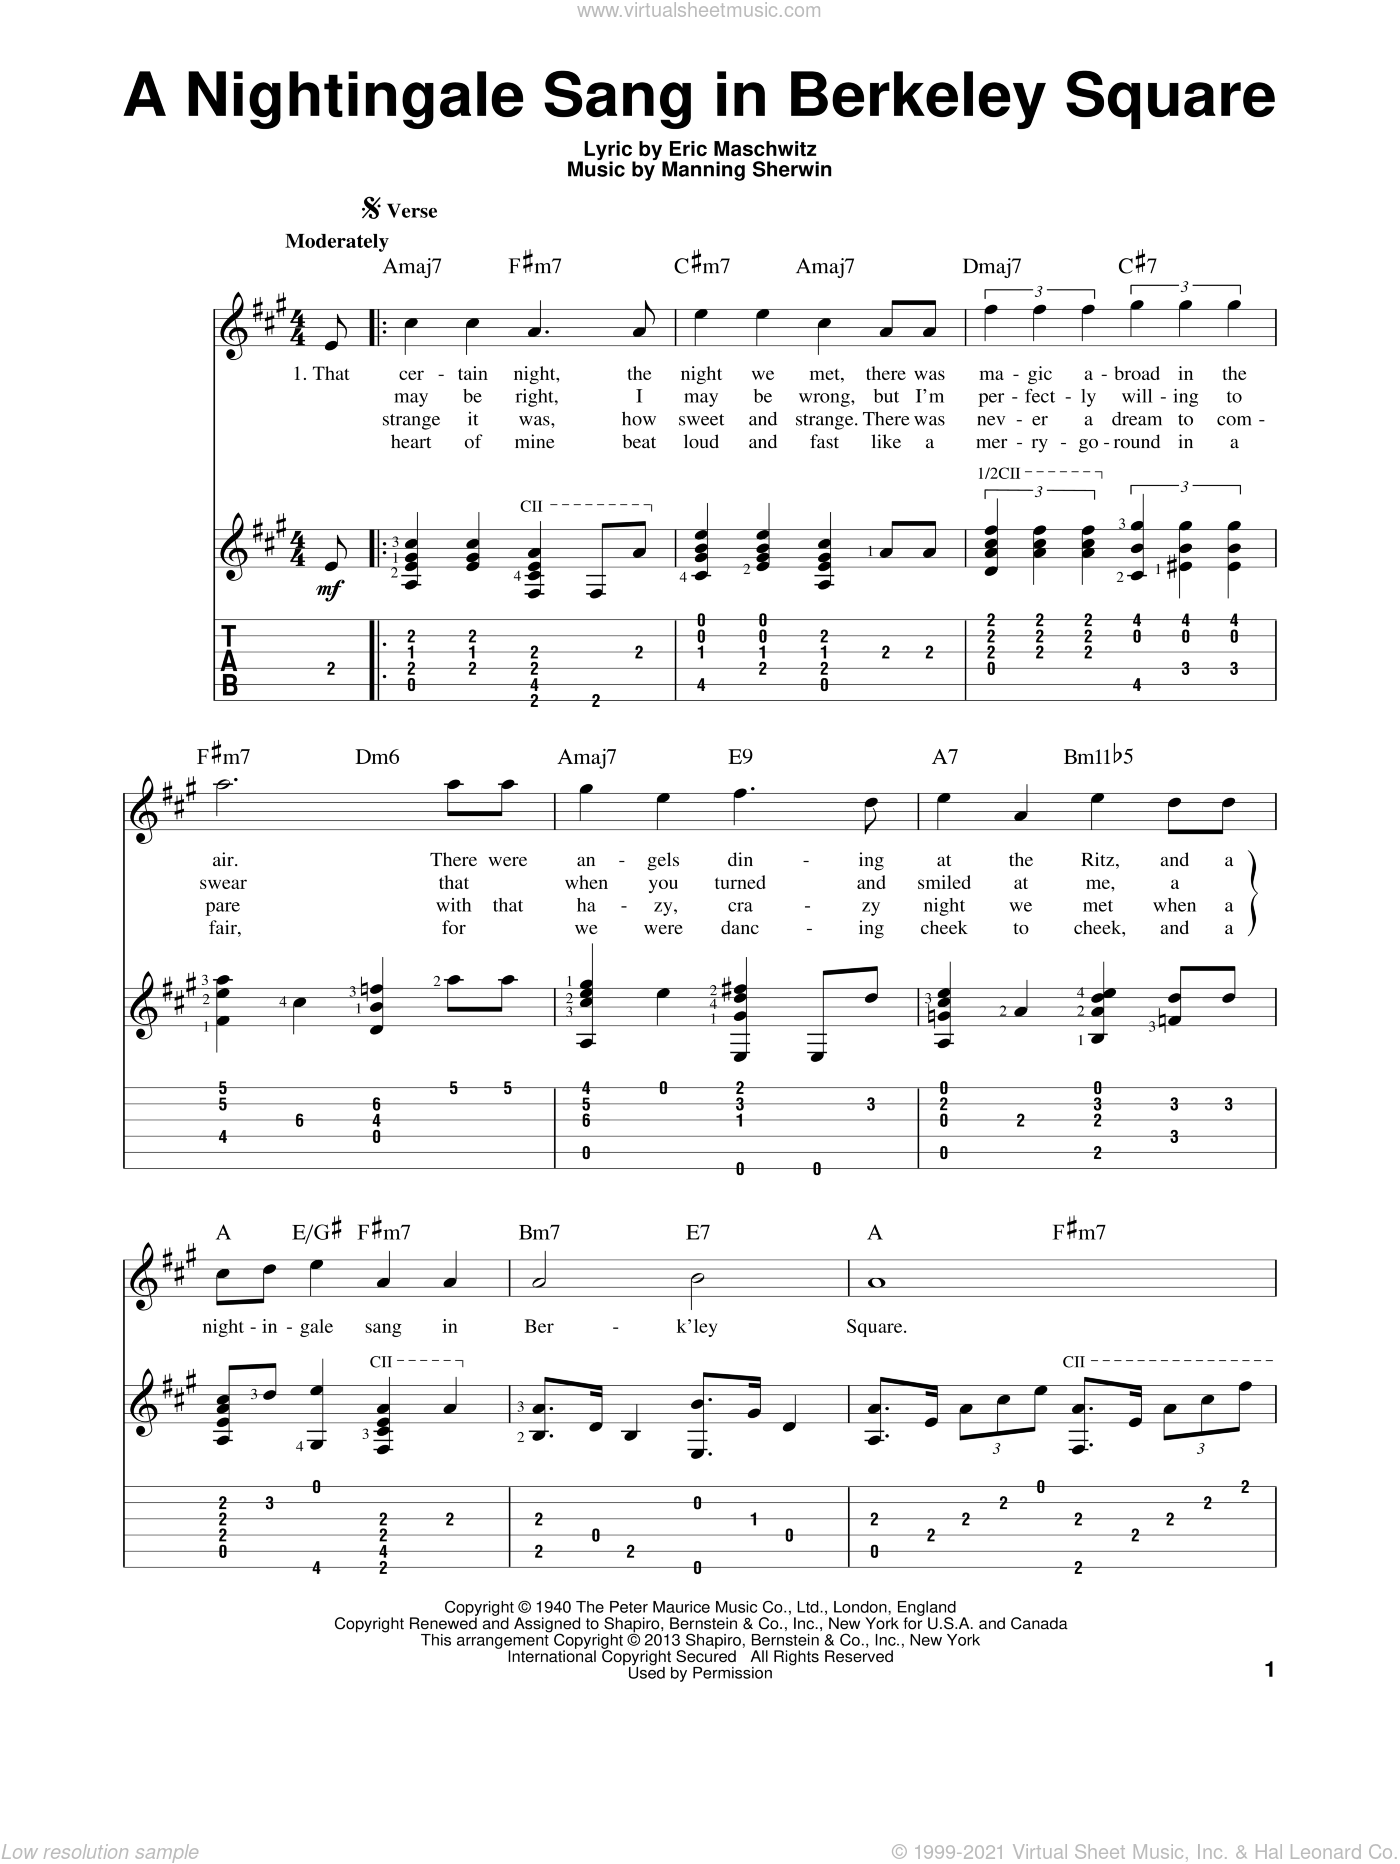 A Nightingale Sang In Berkeley Square sheet music for guitar solo by Manning Sherwin